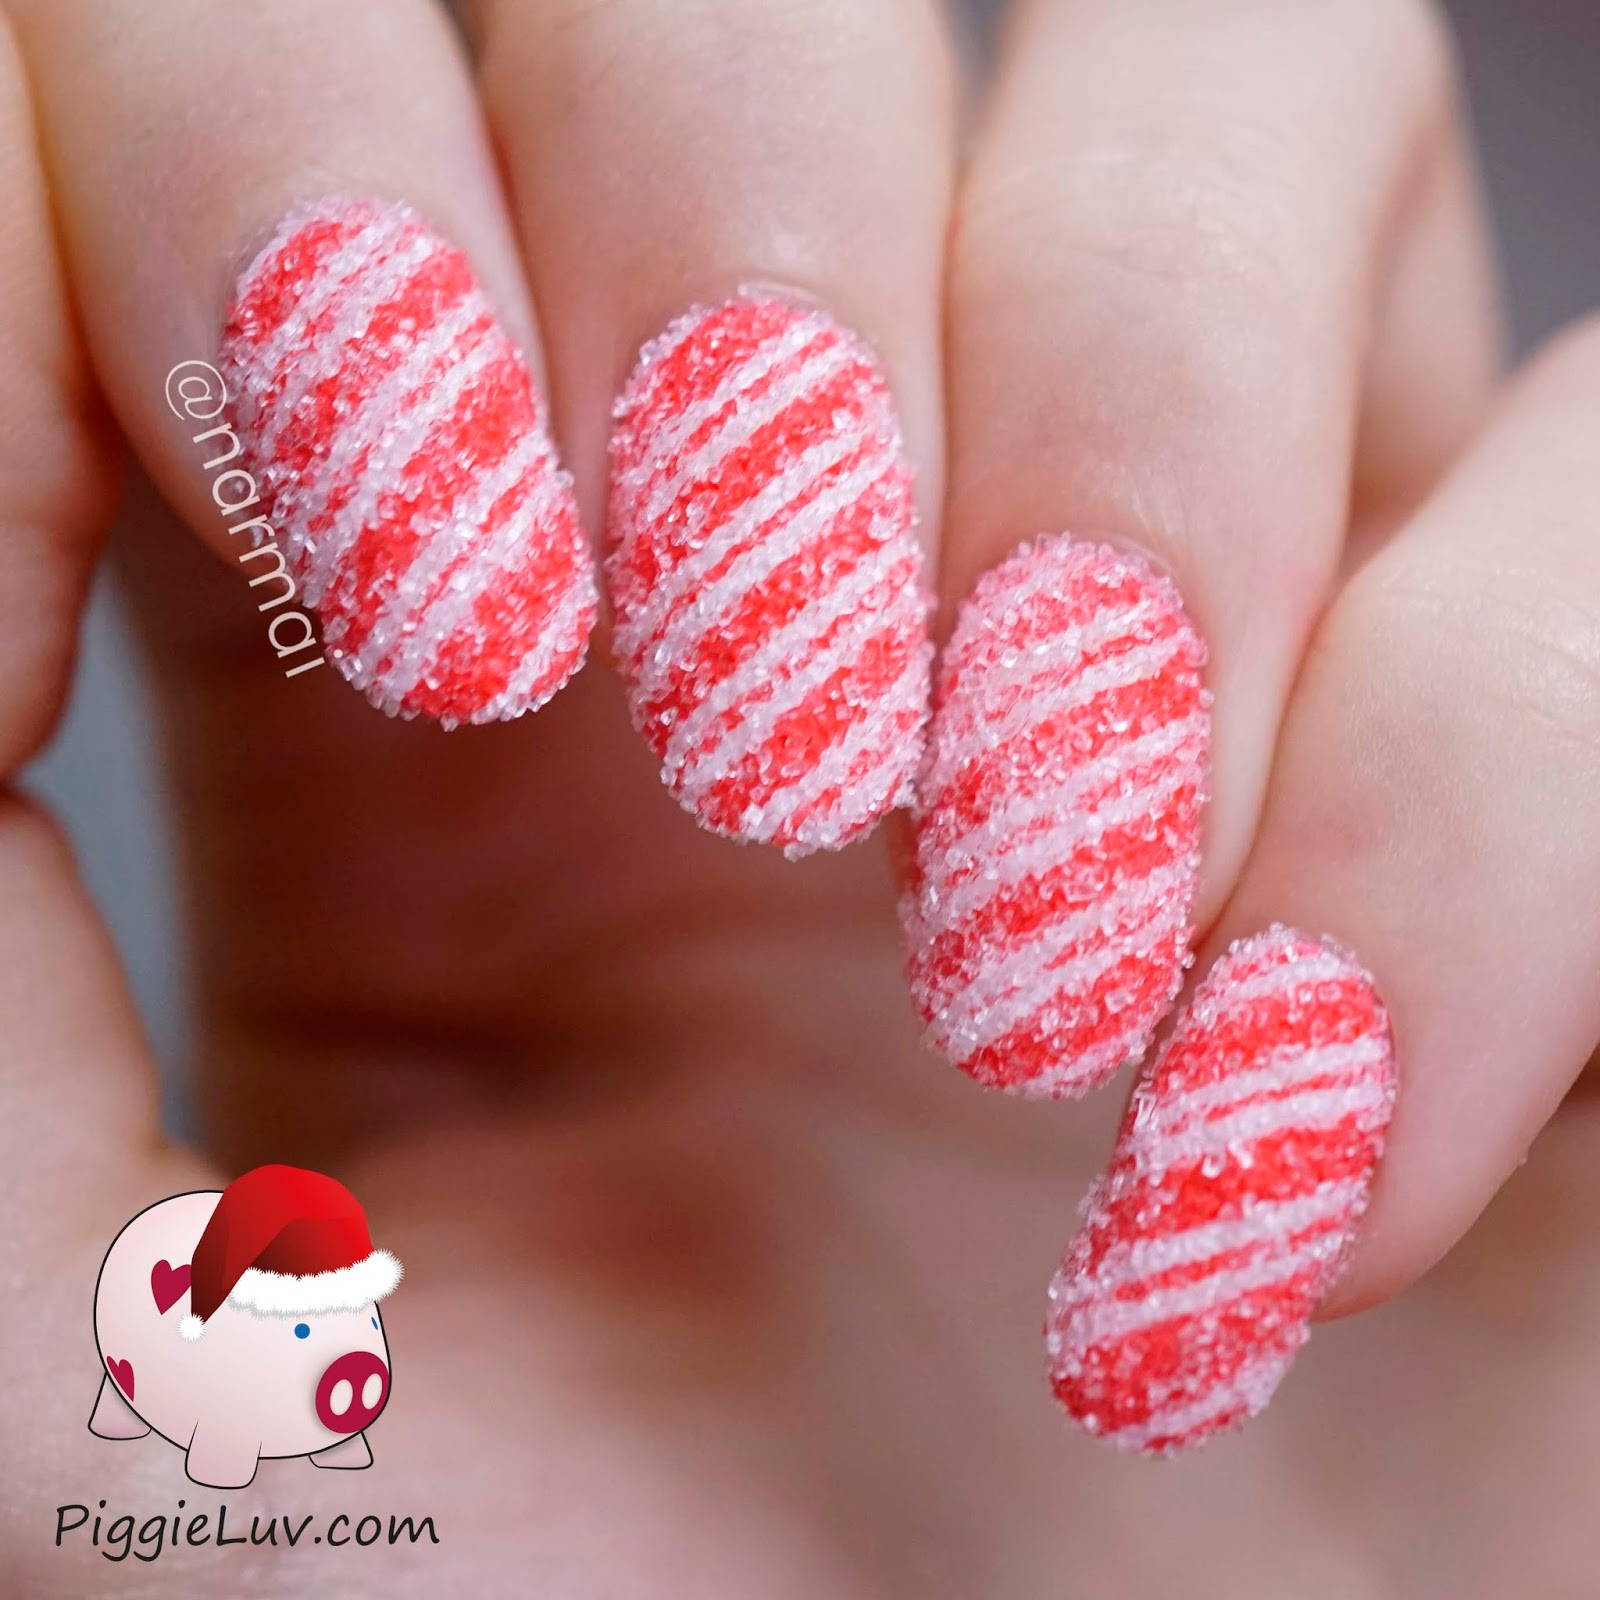 PiggieLuv: Sugared candy canes nail art + video tutorial